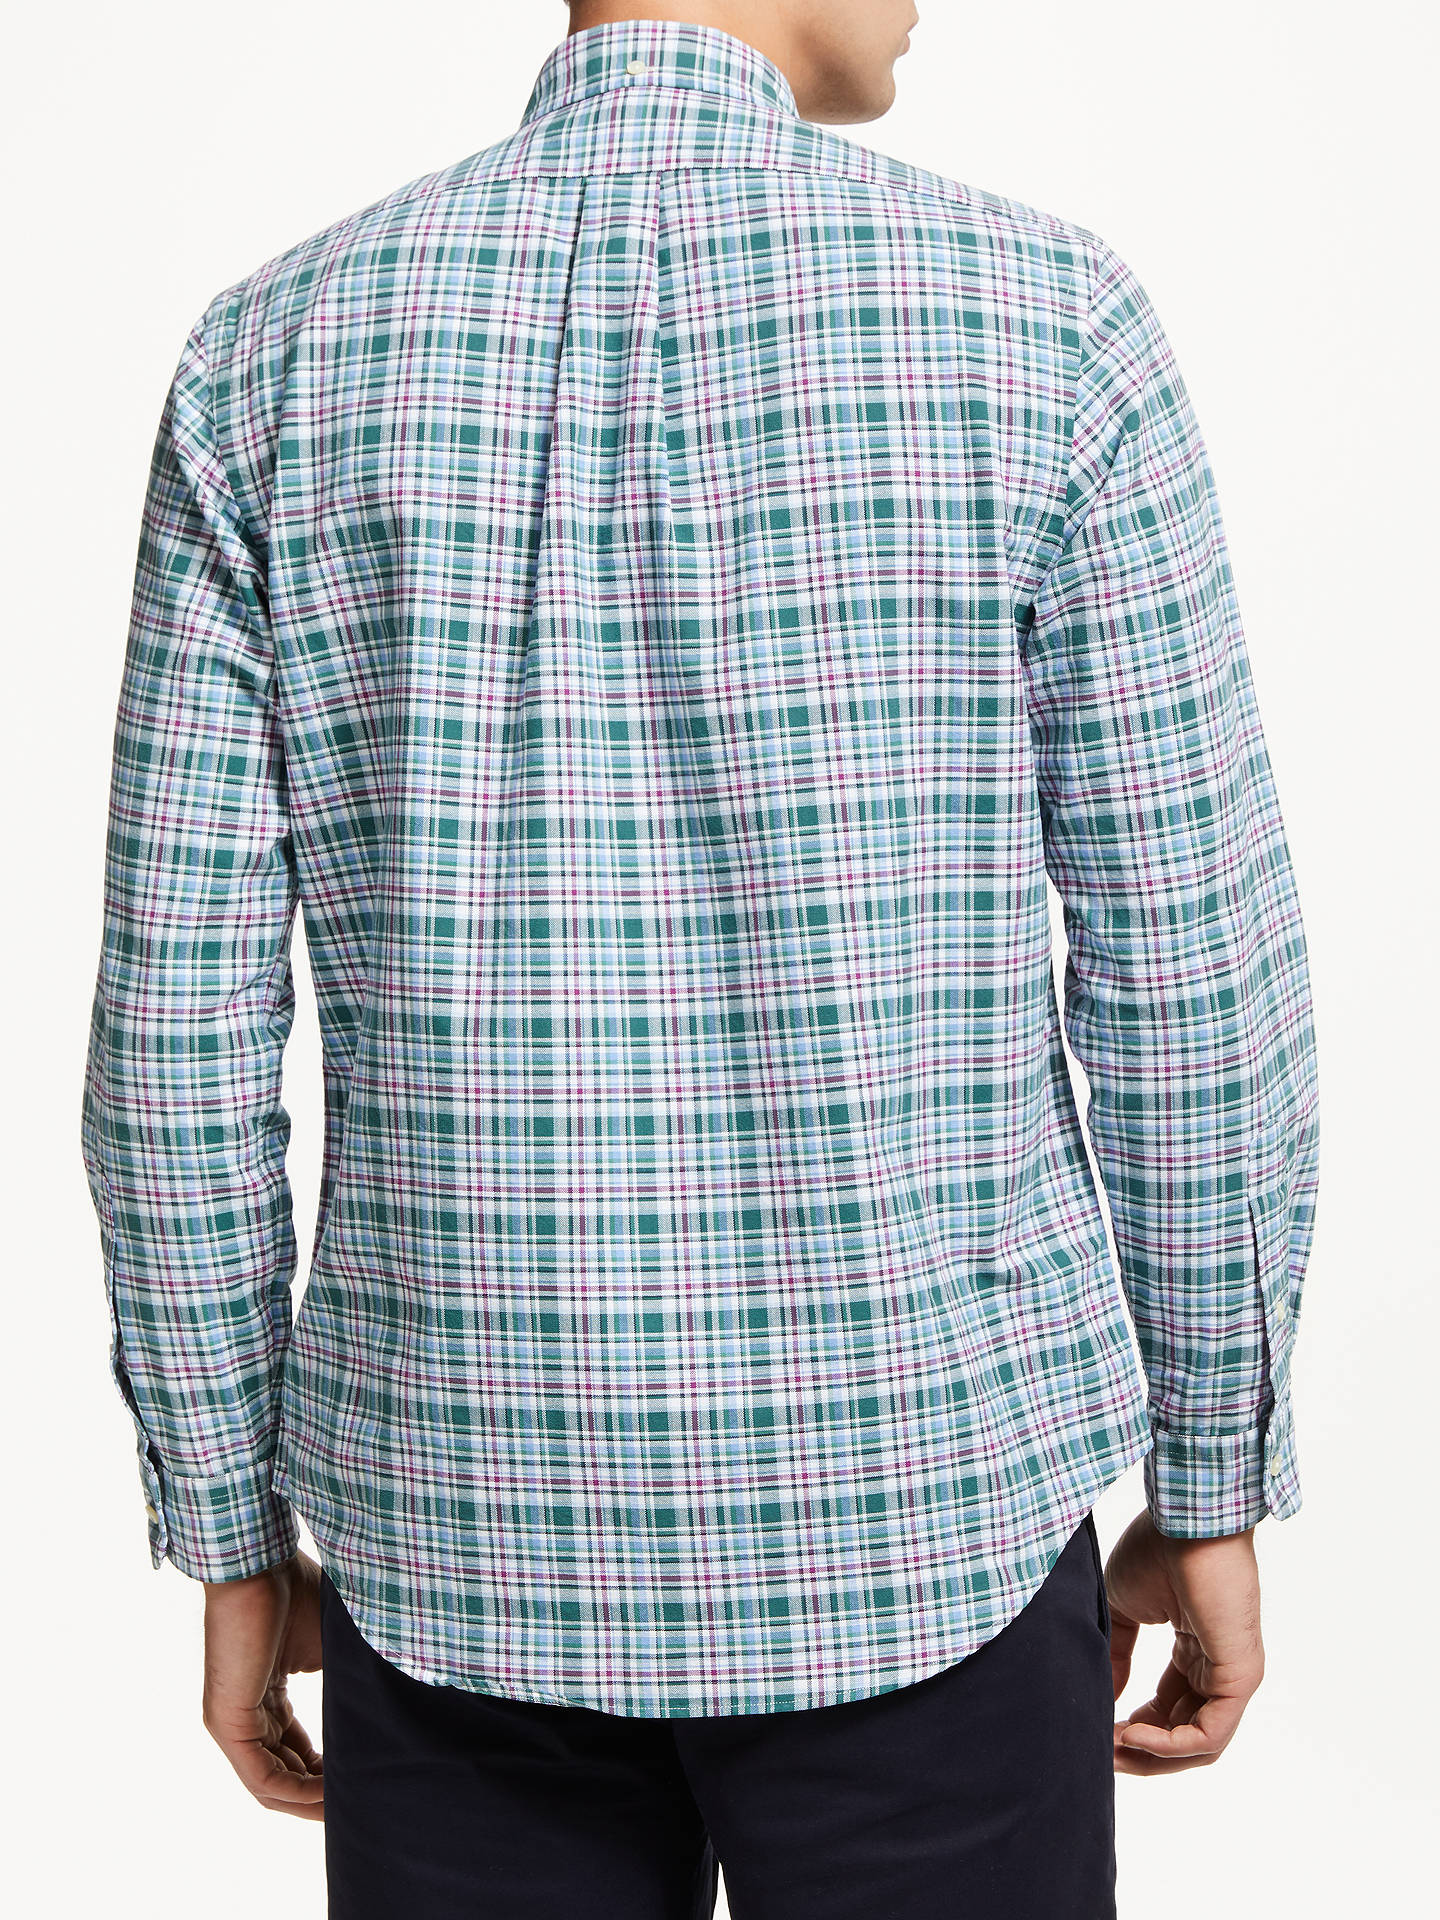 Buy Polo Ralph Lauren Check Sports Shirt, Forest Green/Wine, XXL Online at johnlewis.com